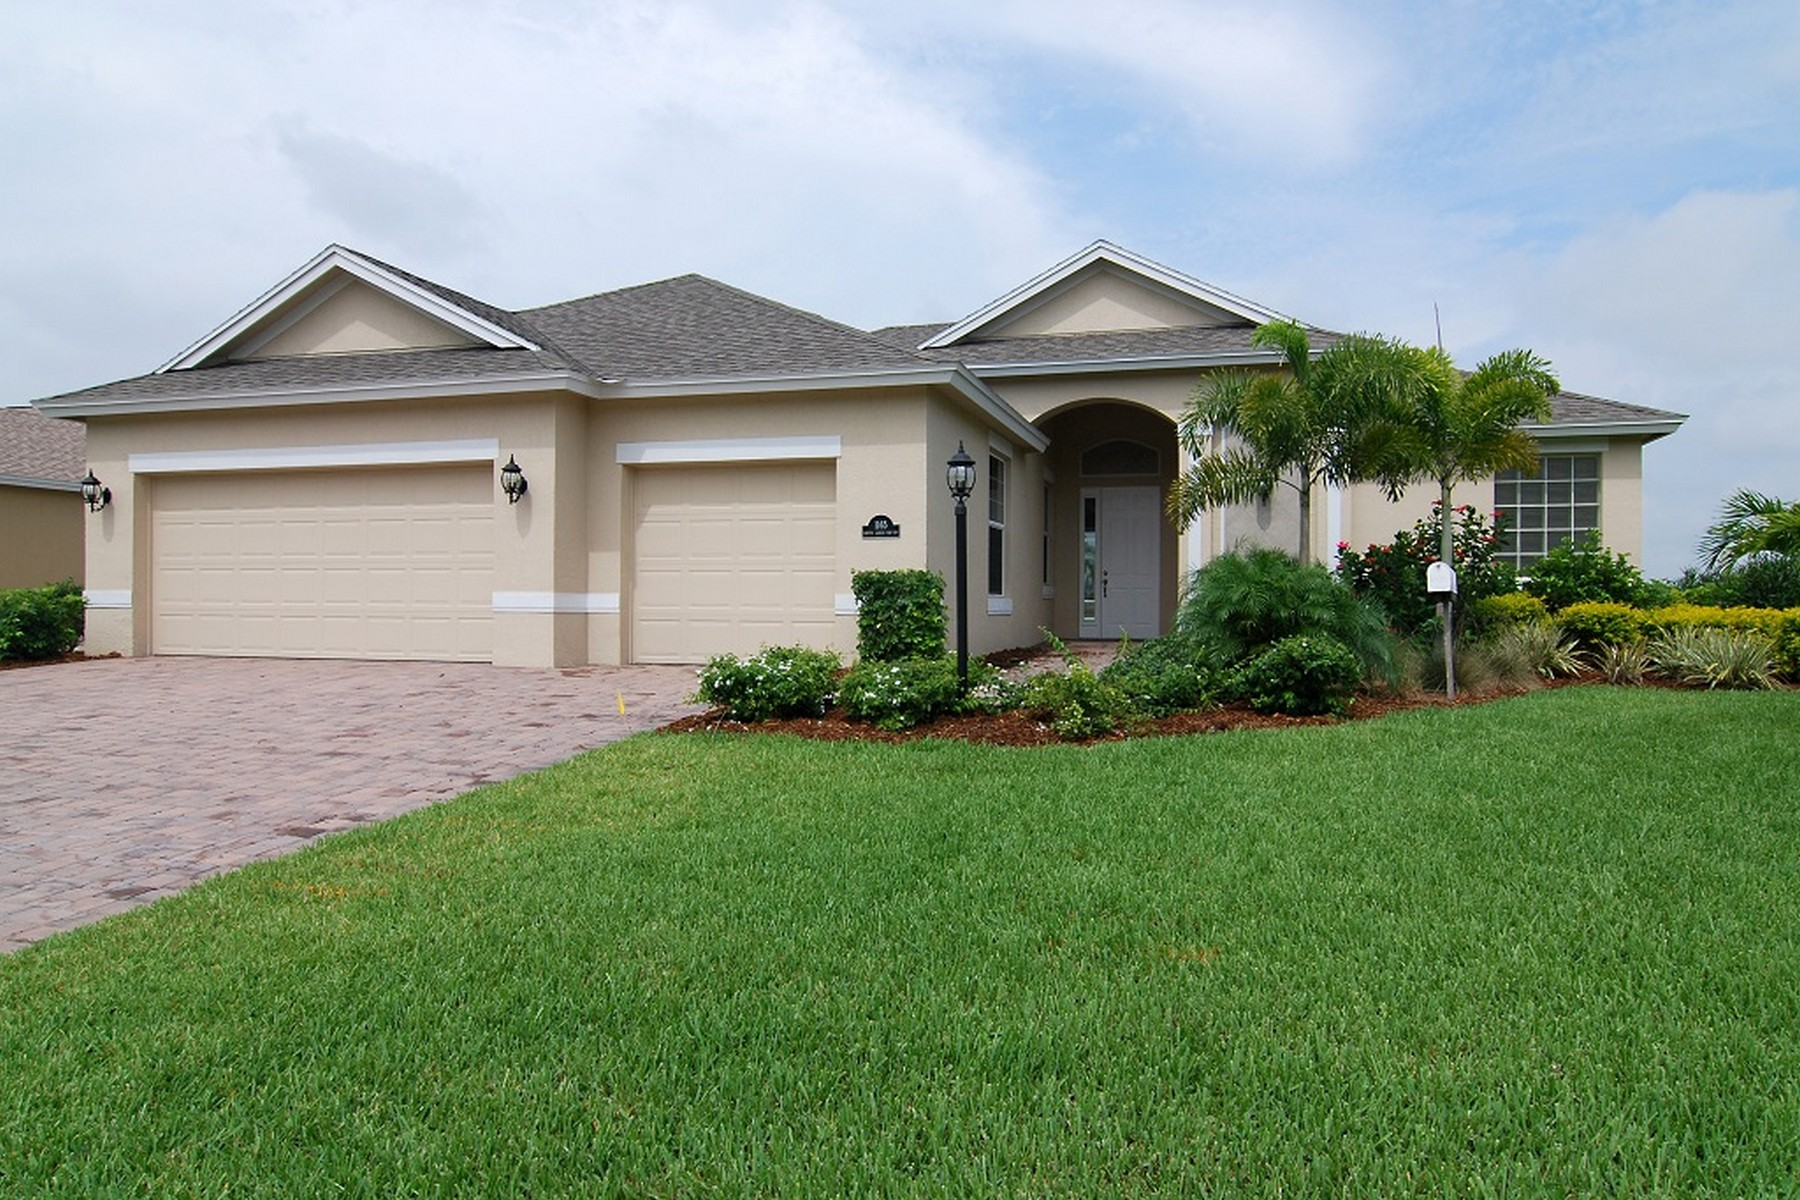 Casa Unifamiliar por un Venta en The Columbia Model 4472 Gagnon Road Port St. Lucie, Florida, 34953 Estados Unidos